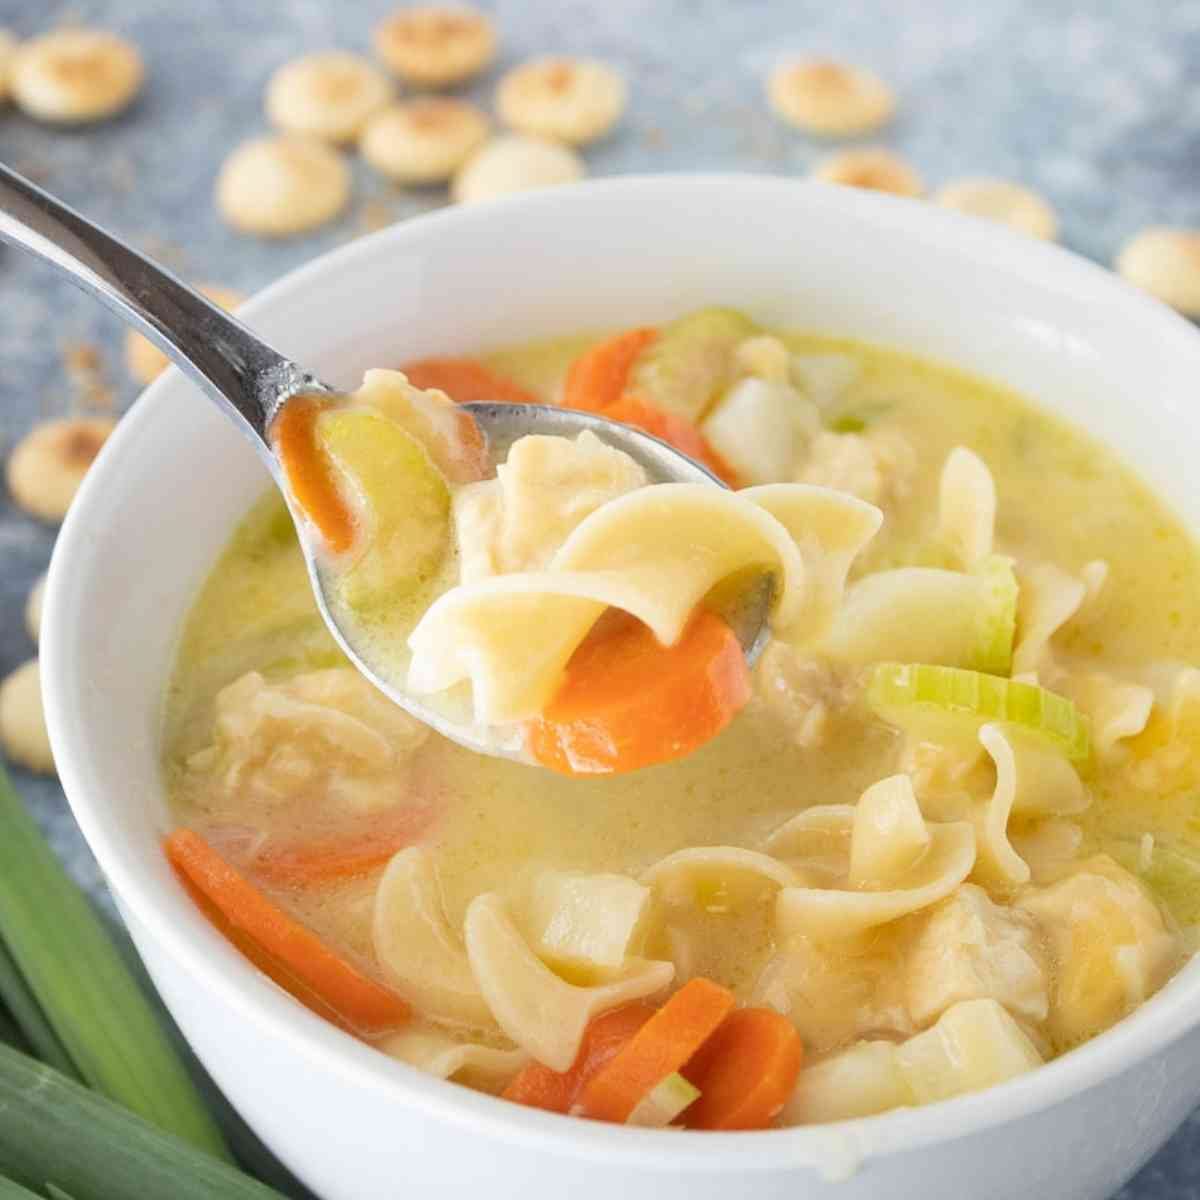 Bowl of creamy chicken noodle soup.